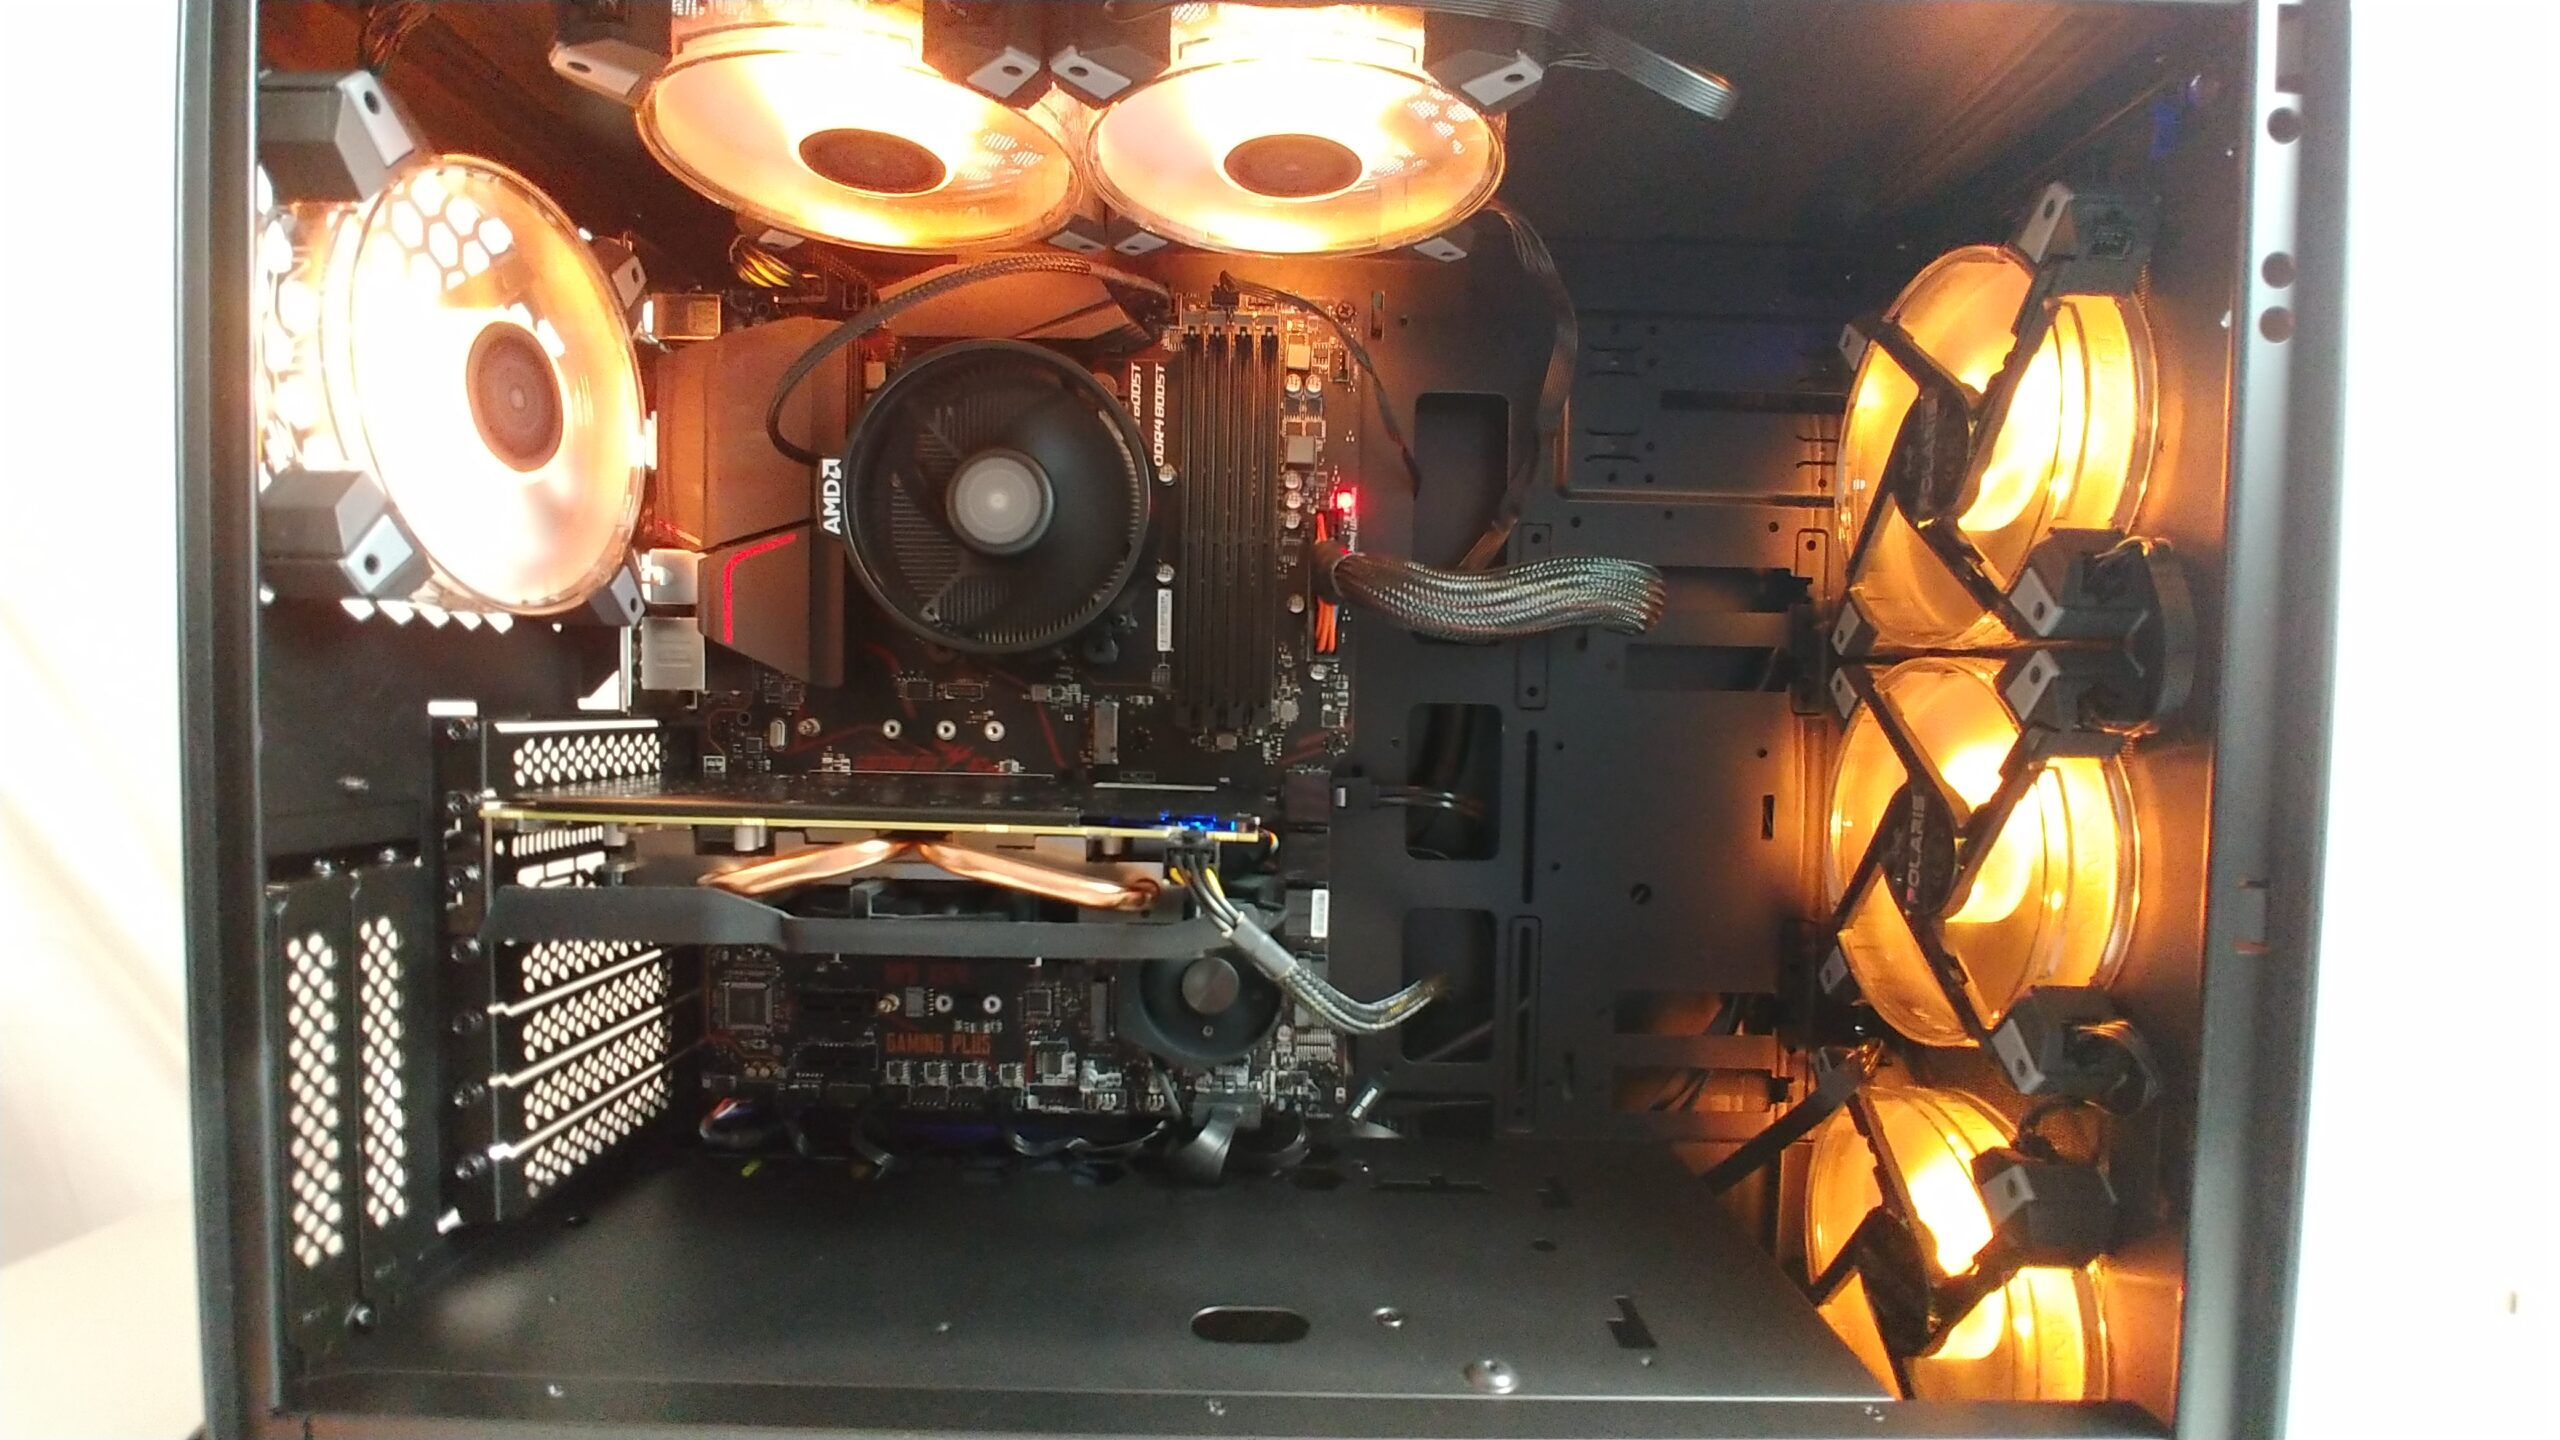 Inside the InWin 216 with RGB fans.